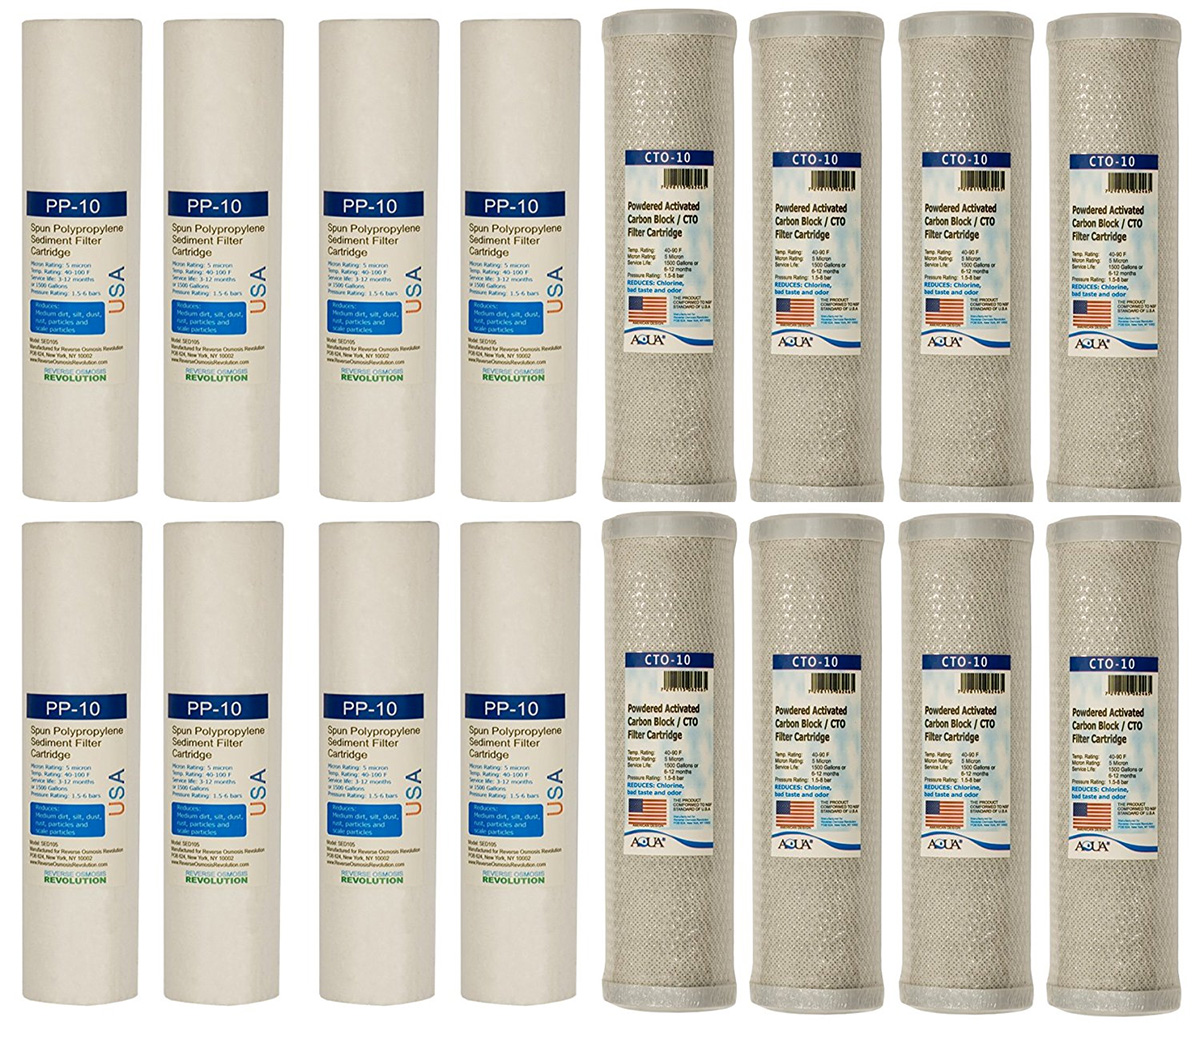 8 replacement filter sets for Dual Stage Reverse Osmosis Revolution Whole House System (2 year supply)